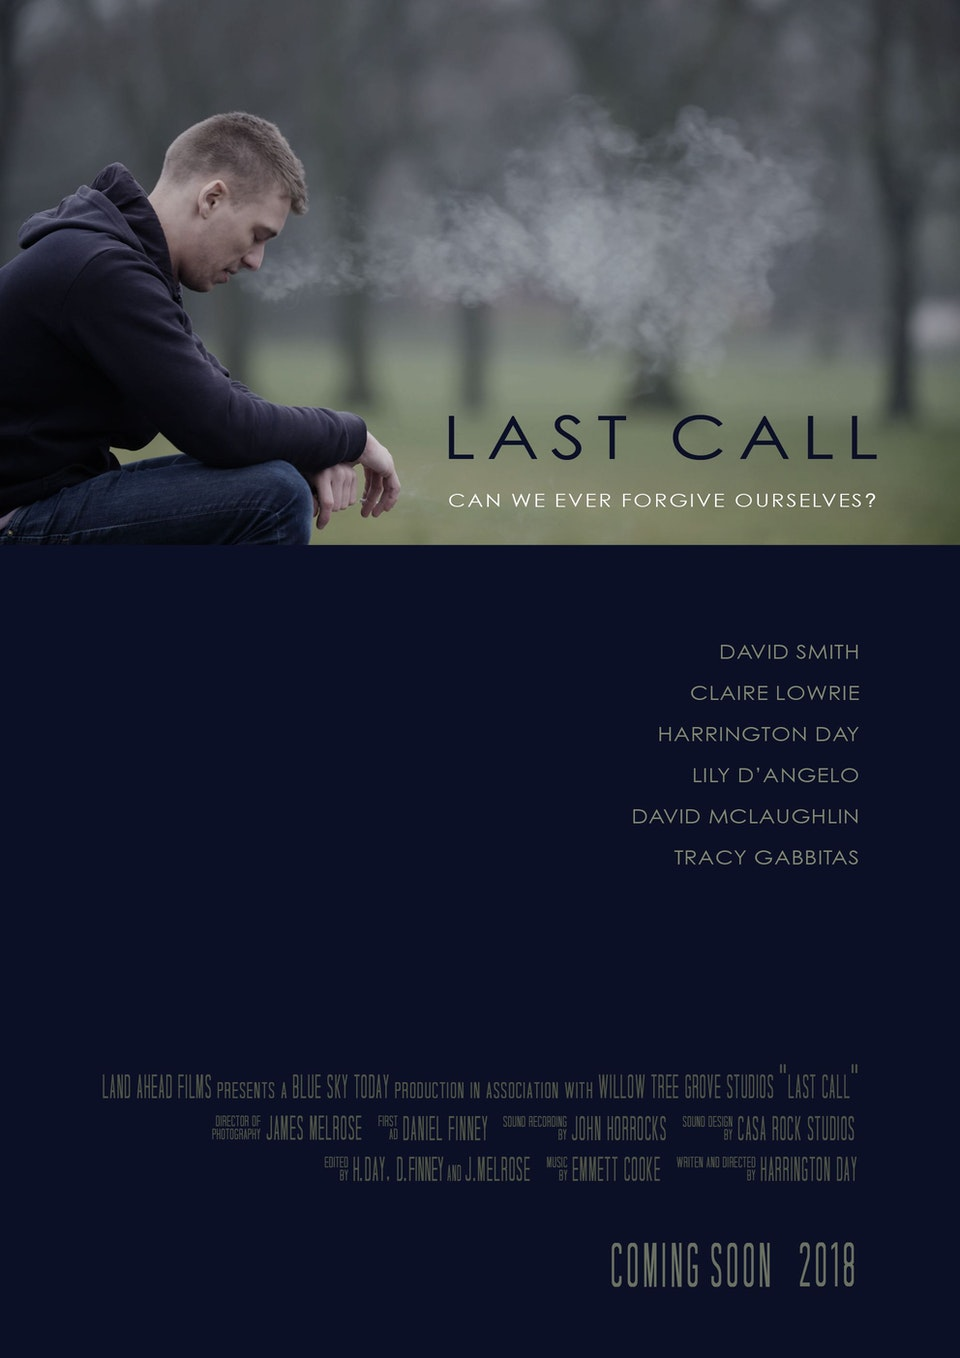 Last Call Poster Released